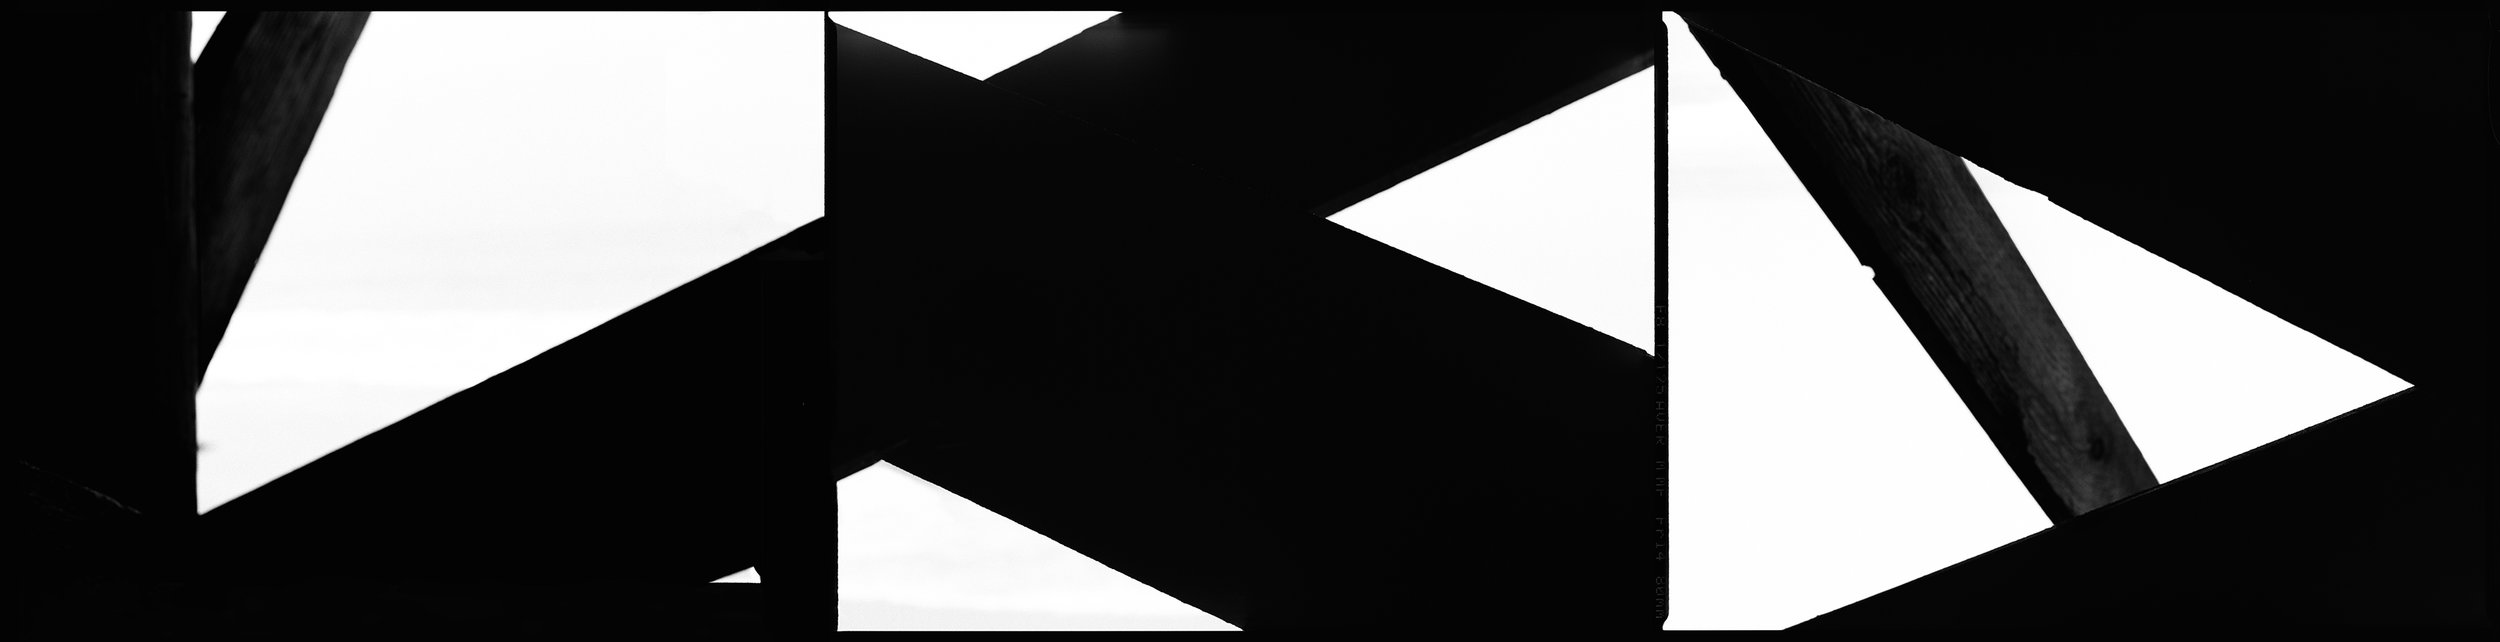 Untitled #21   (Nowhere)  , 2012/ archival pigment   print, 13 1/8  x 48 inches  ,  edition of 3 plus 2 AP